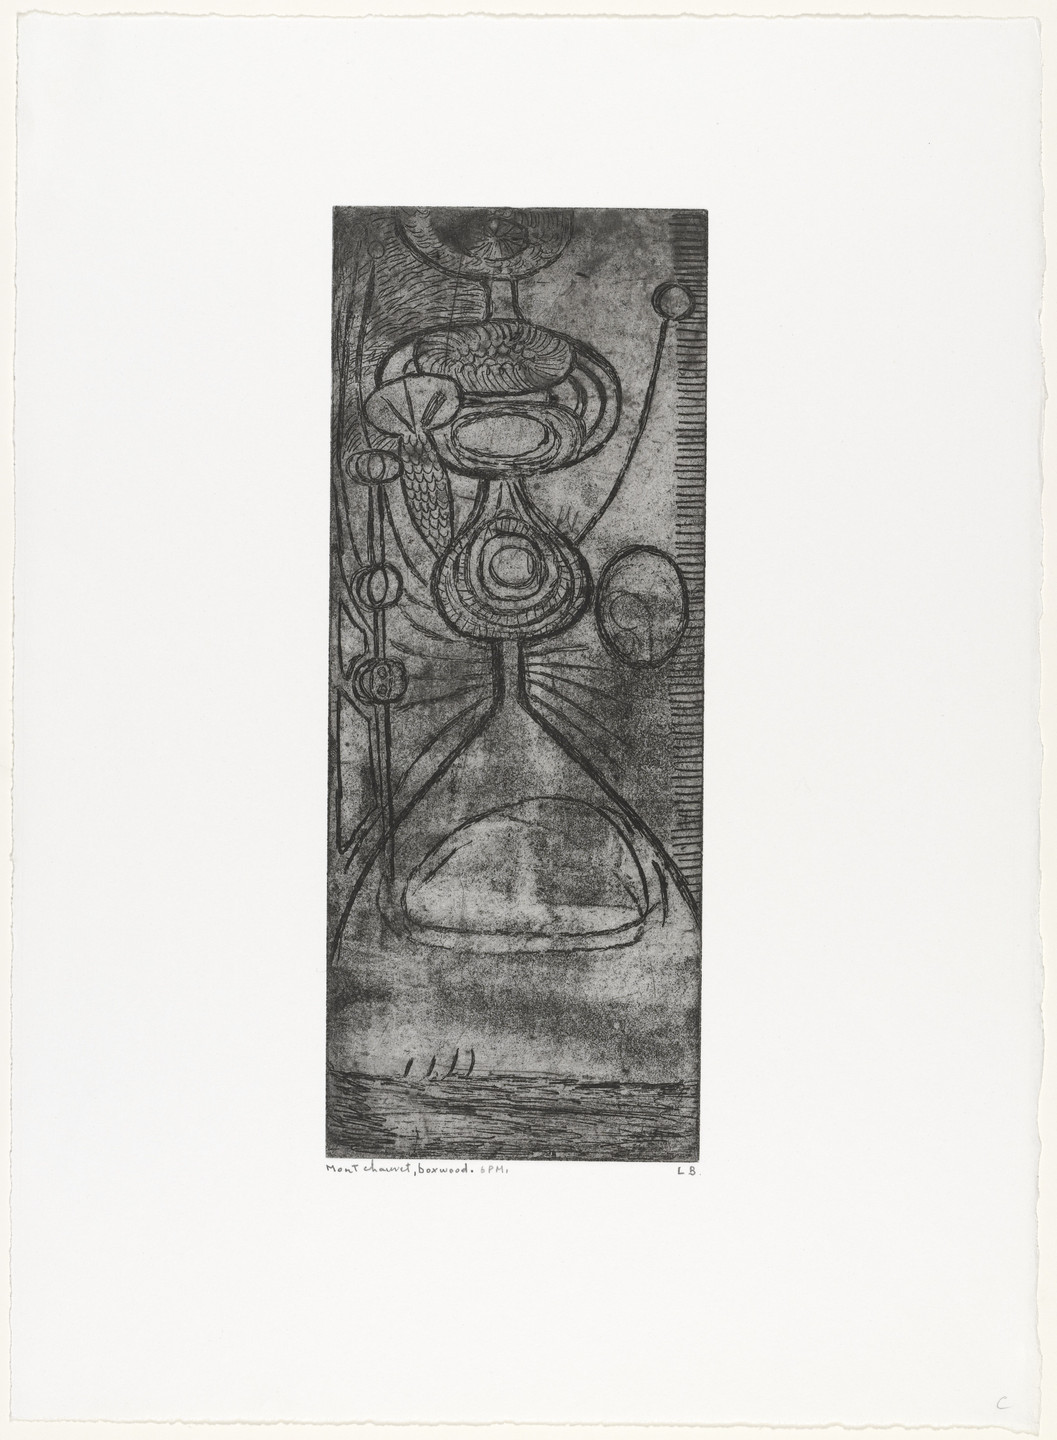 Louise Bourgeois. Boxwood 6PM. c. 1945, reprinted 1990